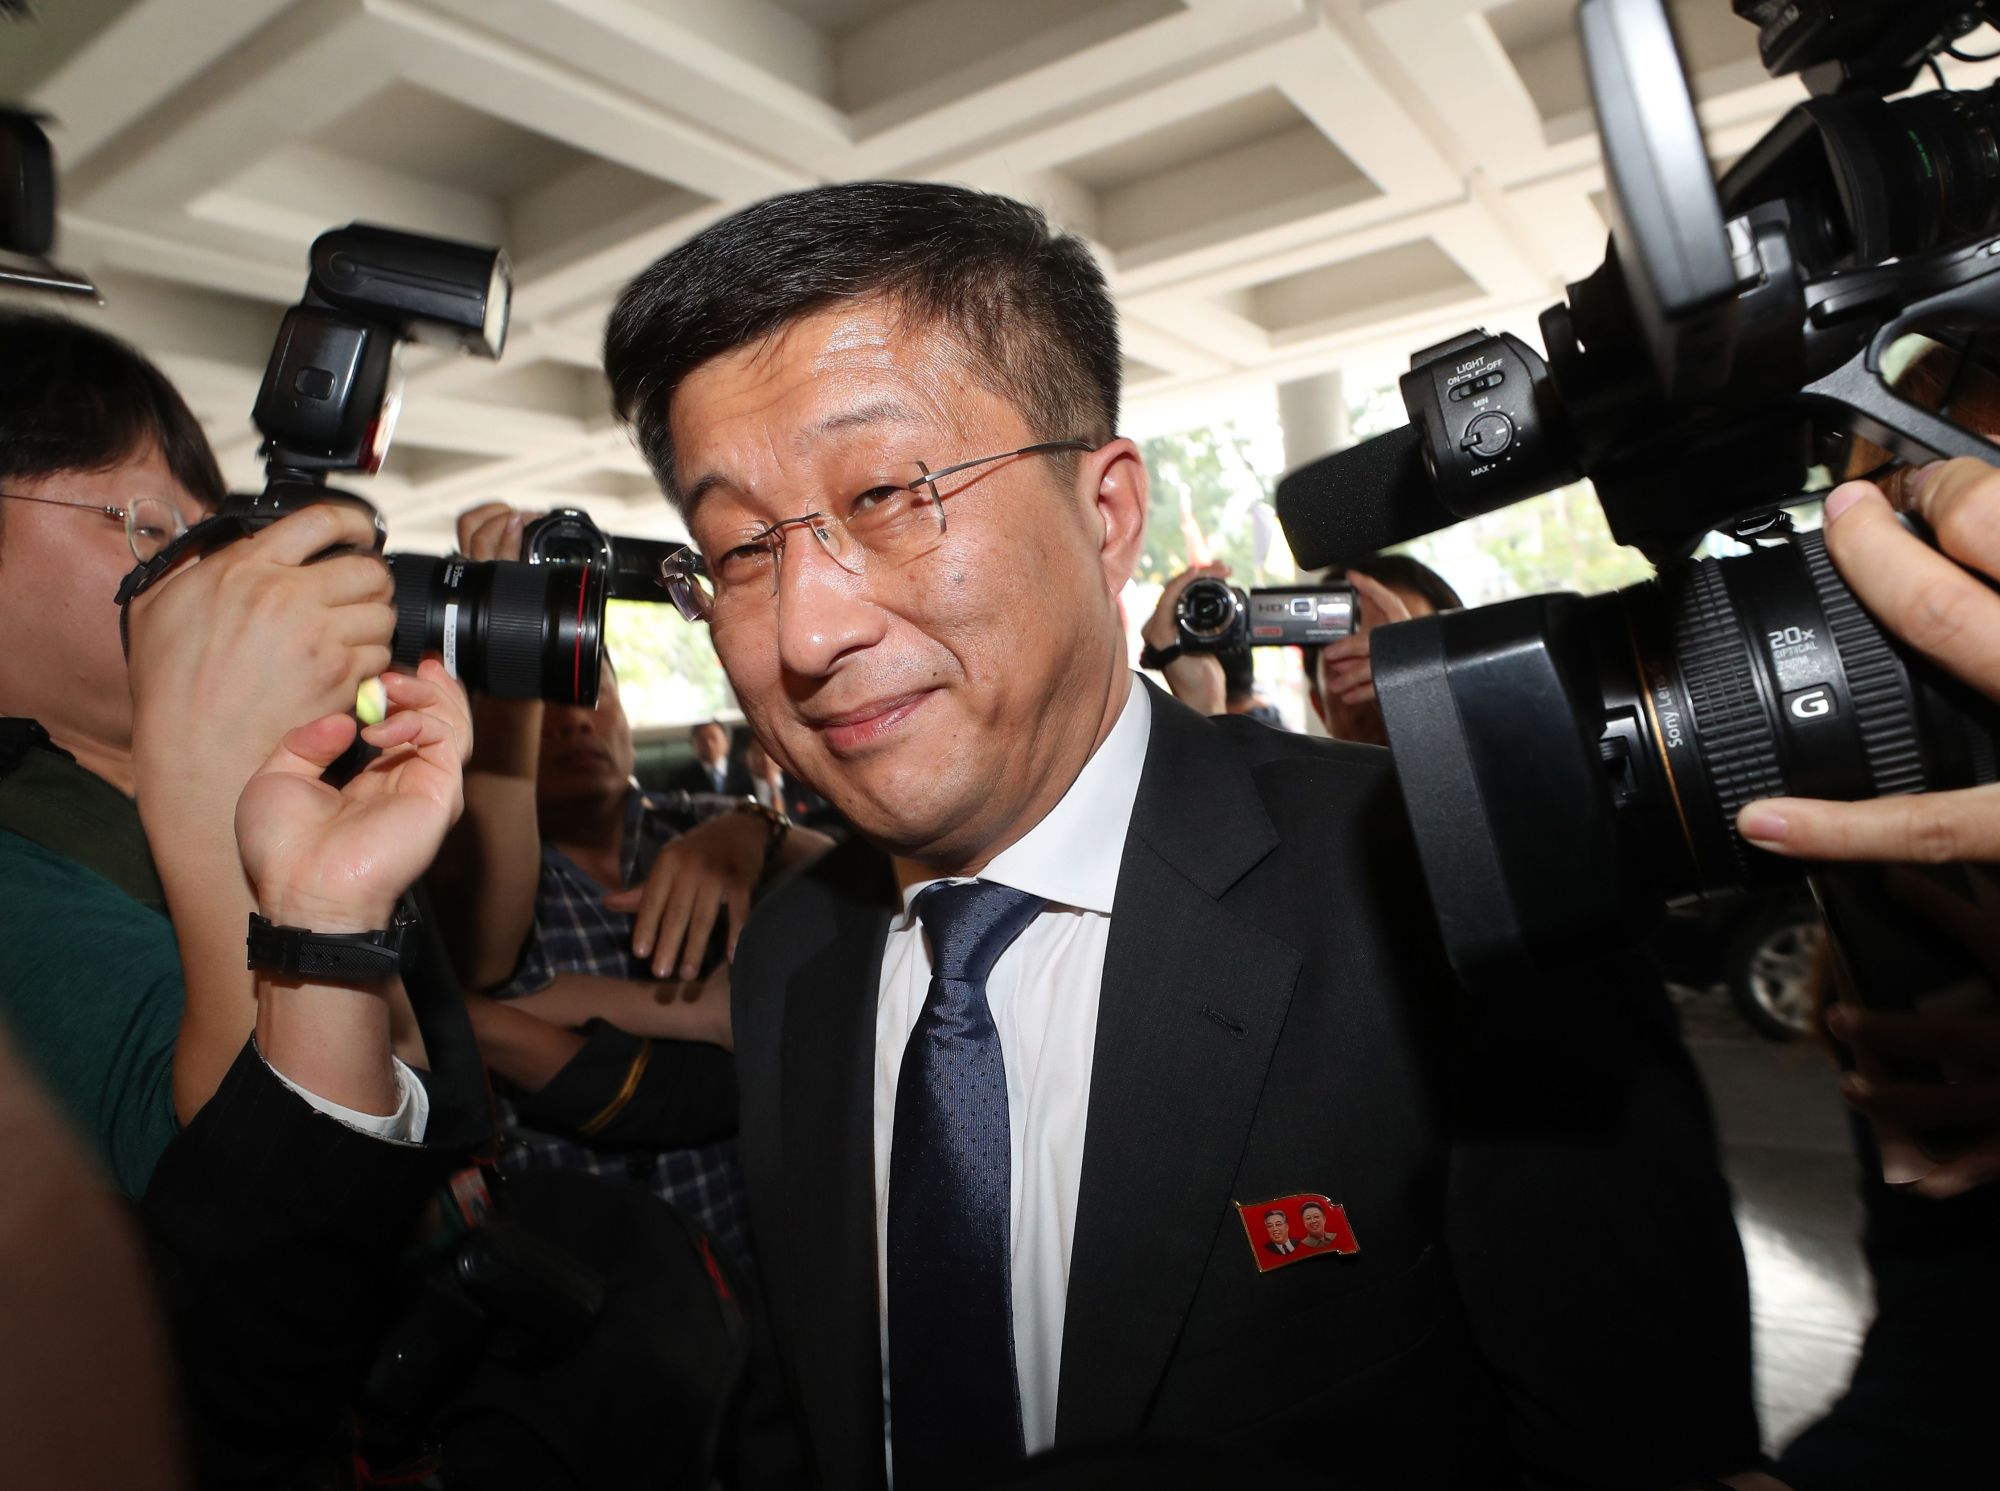 North Korea's top nuclear negotiator, Kim Hyok Chol, is surrounded by the media as he arrives for talks with U.S. counterpart Stephen Biegun in Hanoi on Thursday. | AFP-JIJI